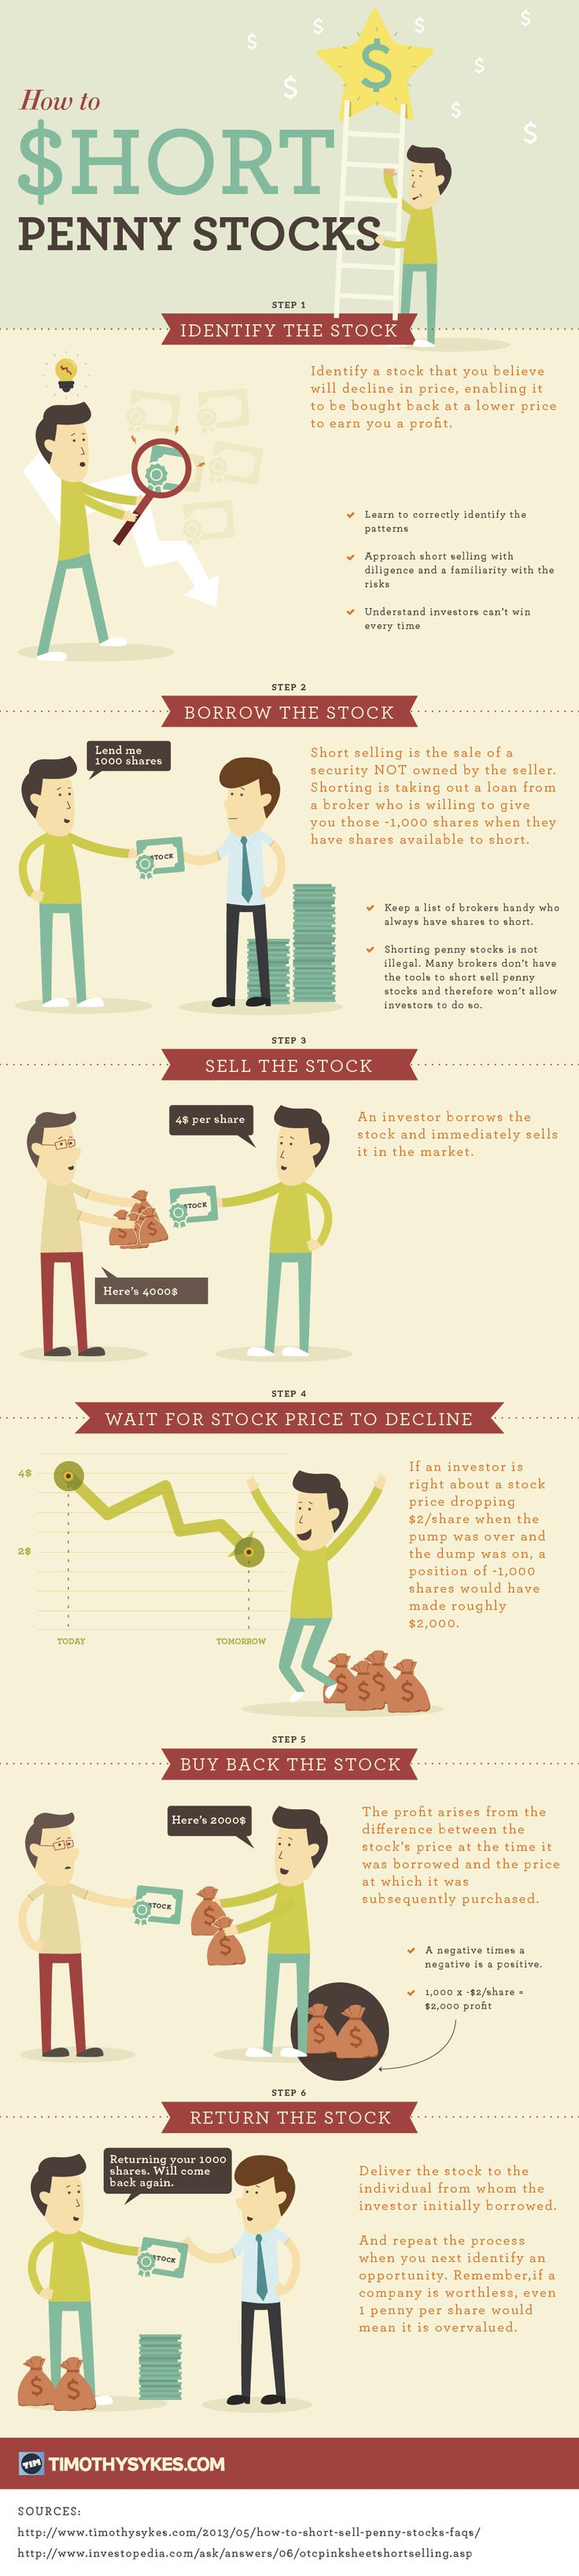 Thisgraphic Is An Introduction To Short Selling Penny Stocks